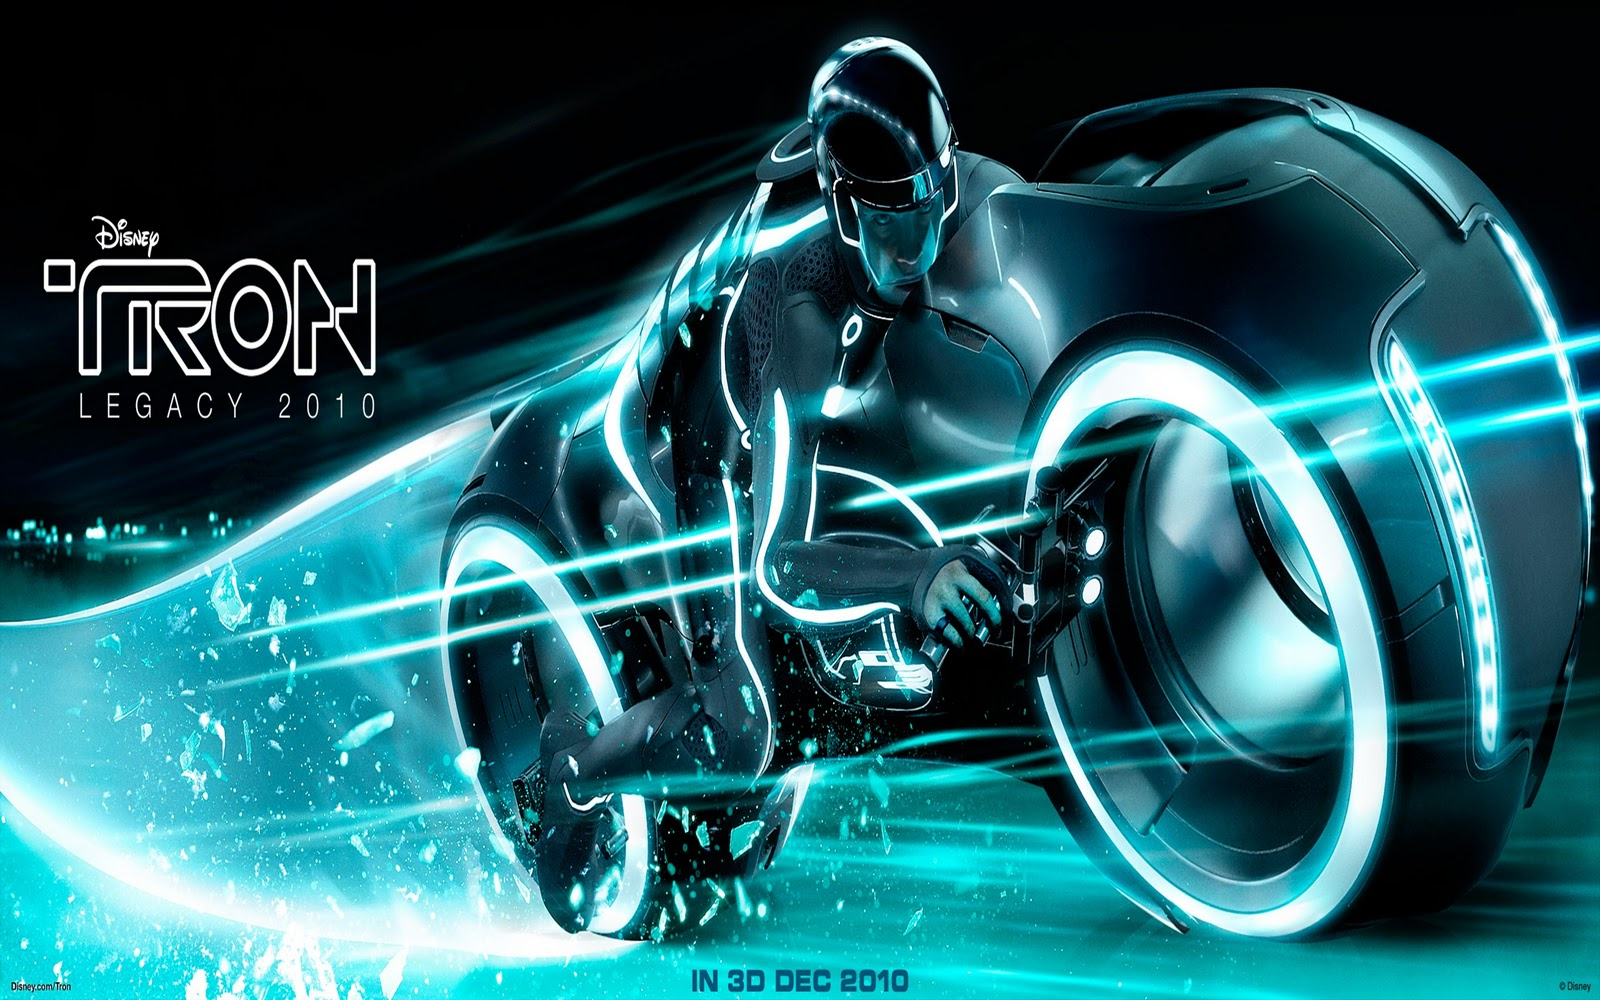 Wallpaper 3d Bike Tron Legacy Download: High Definition Photo And Wallpapers: High Definition Tron